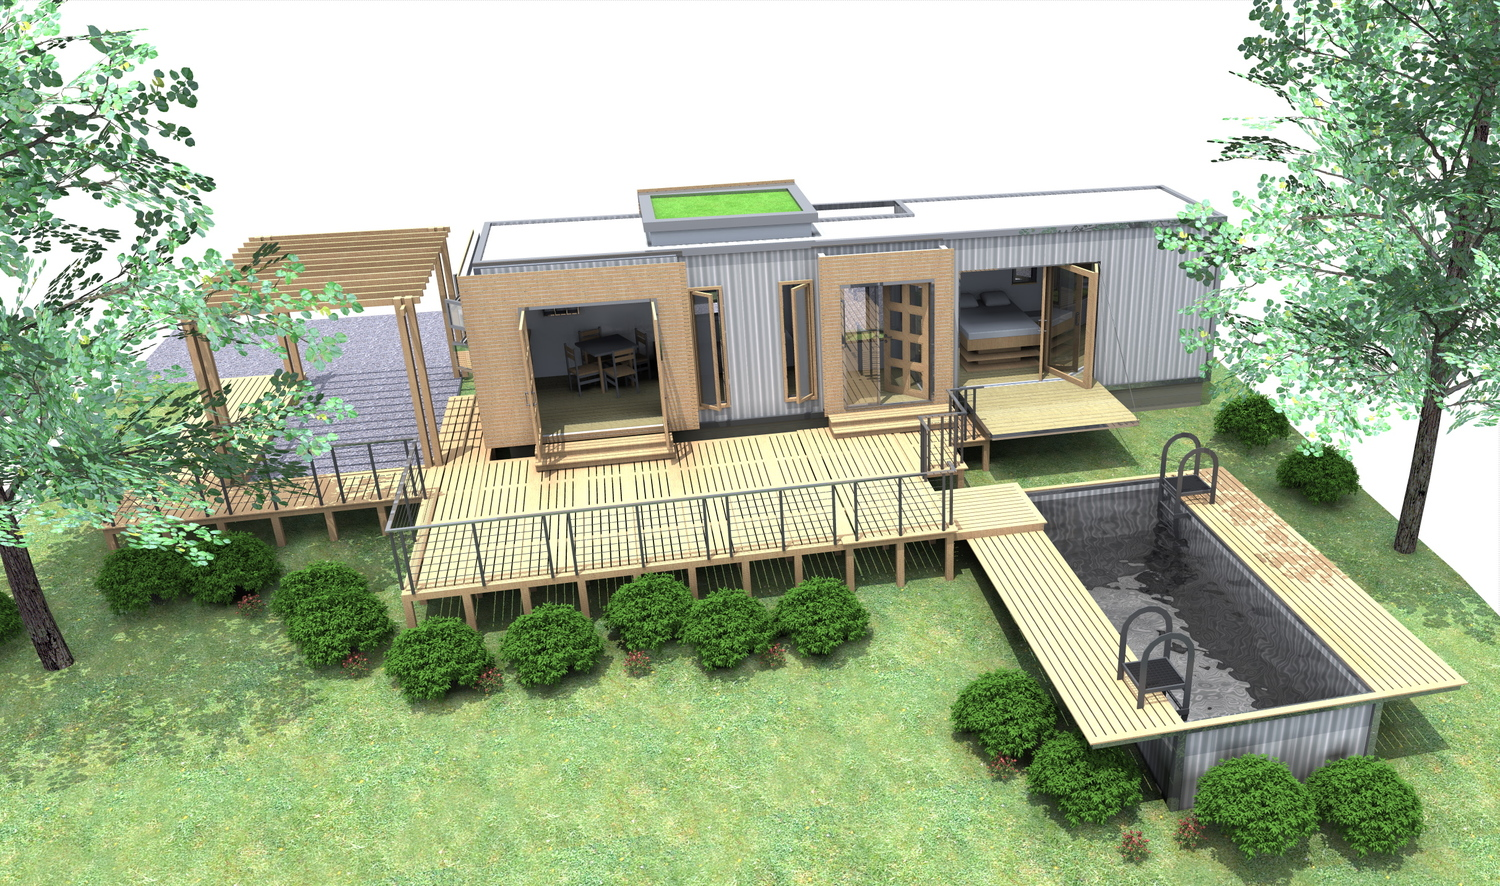 Design Container Home shipping container house design ideas Container Home Designs